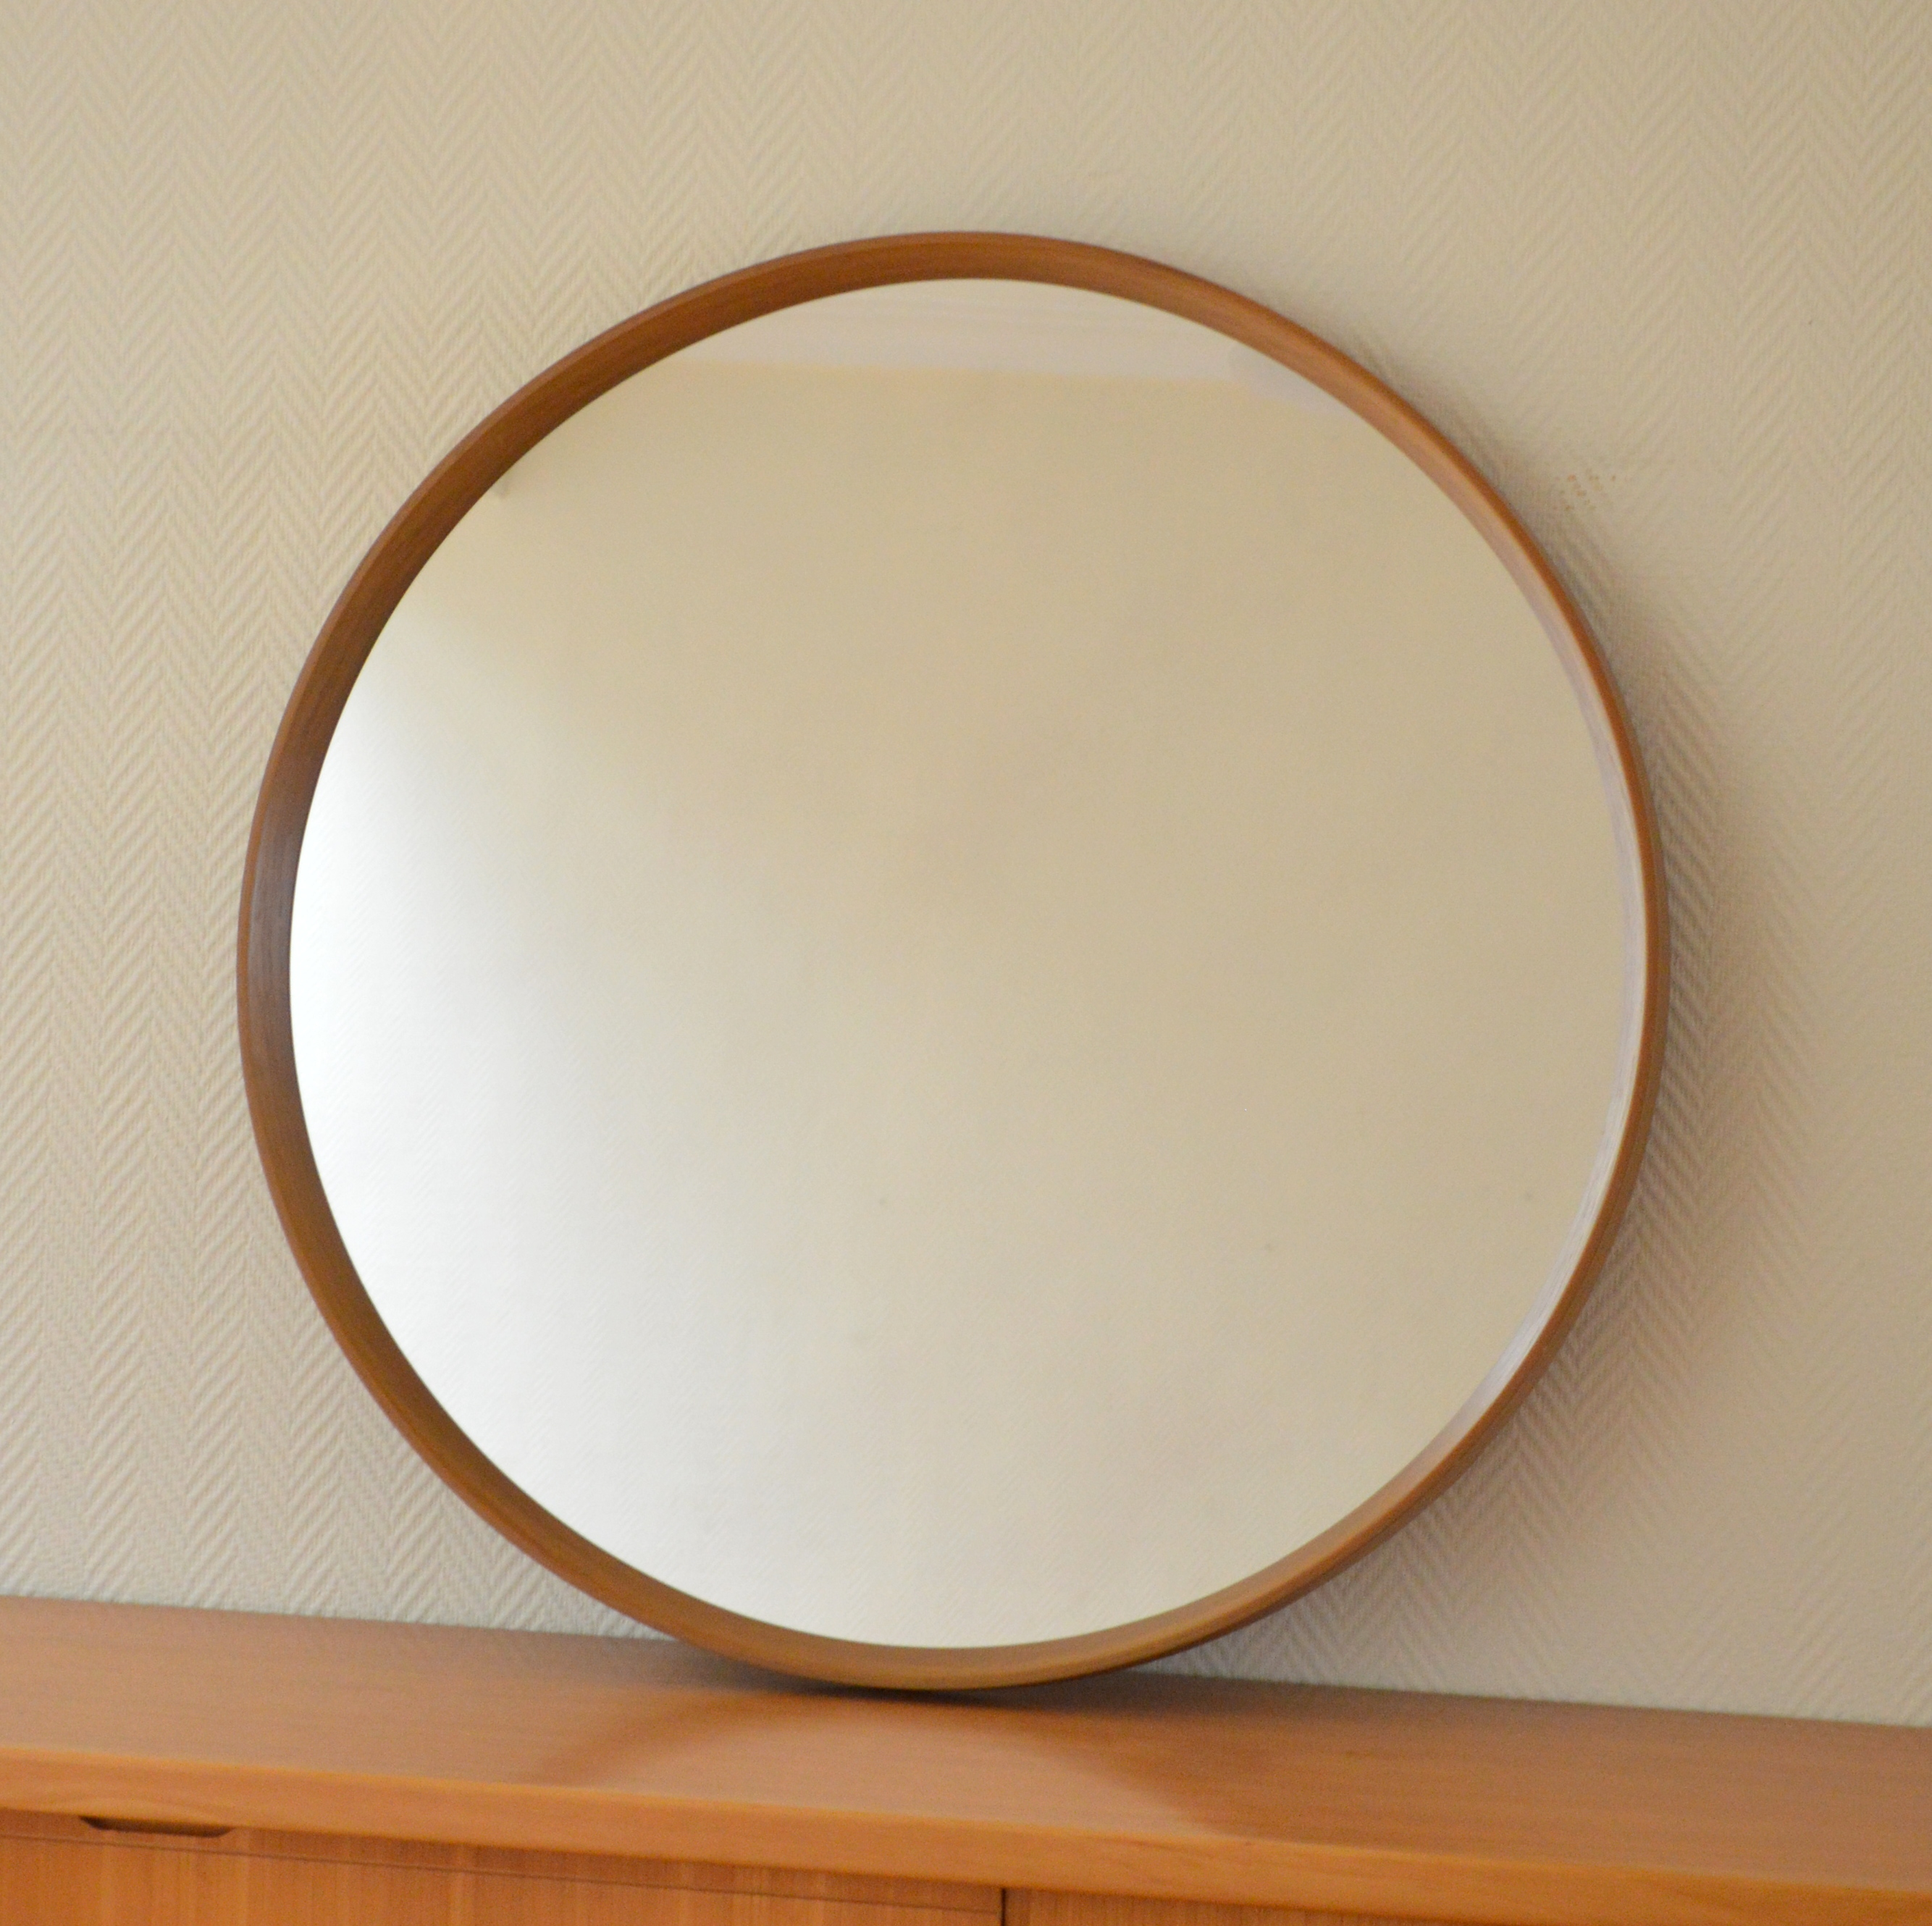 Grand Miroir Rond Design Of Grand Miroir Rond Vintage